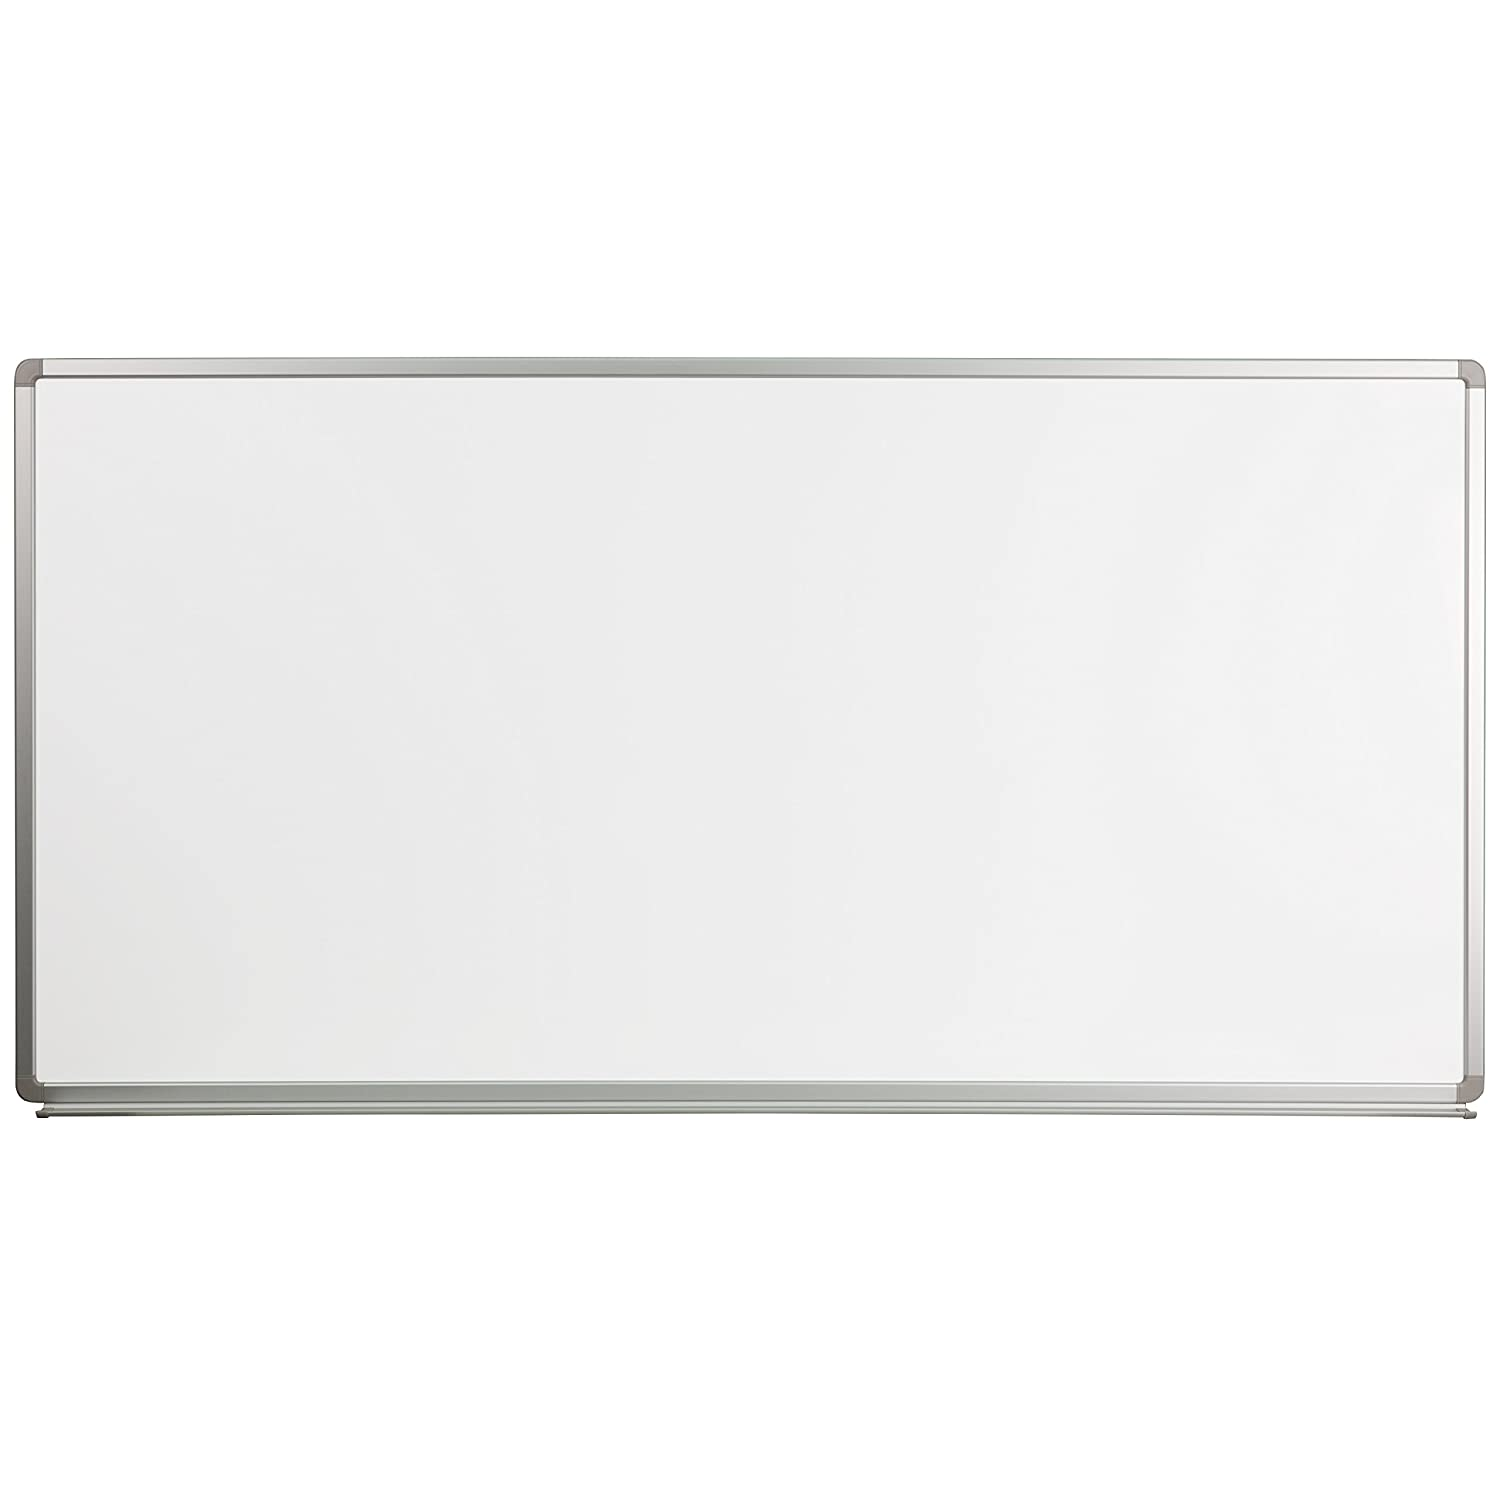 MFO 6' W x 3' H Magnetic Marker Board My Friendly Office